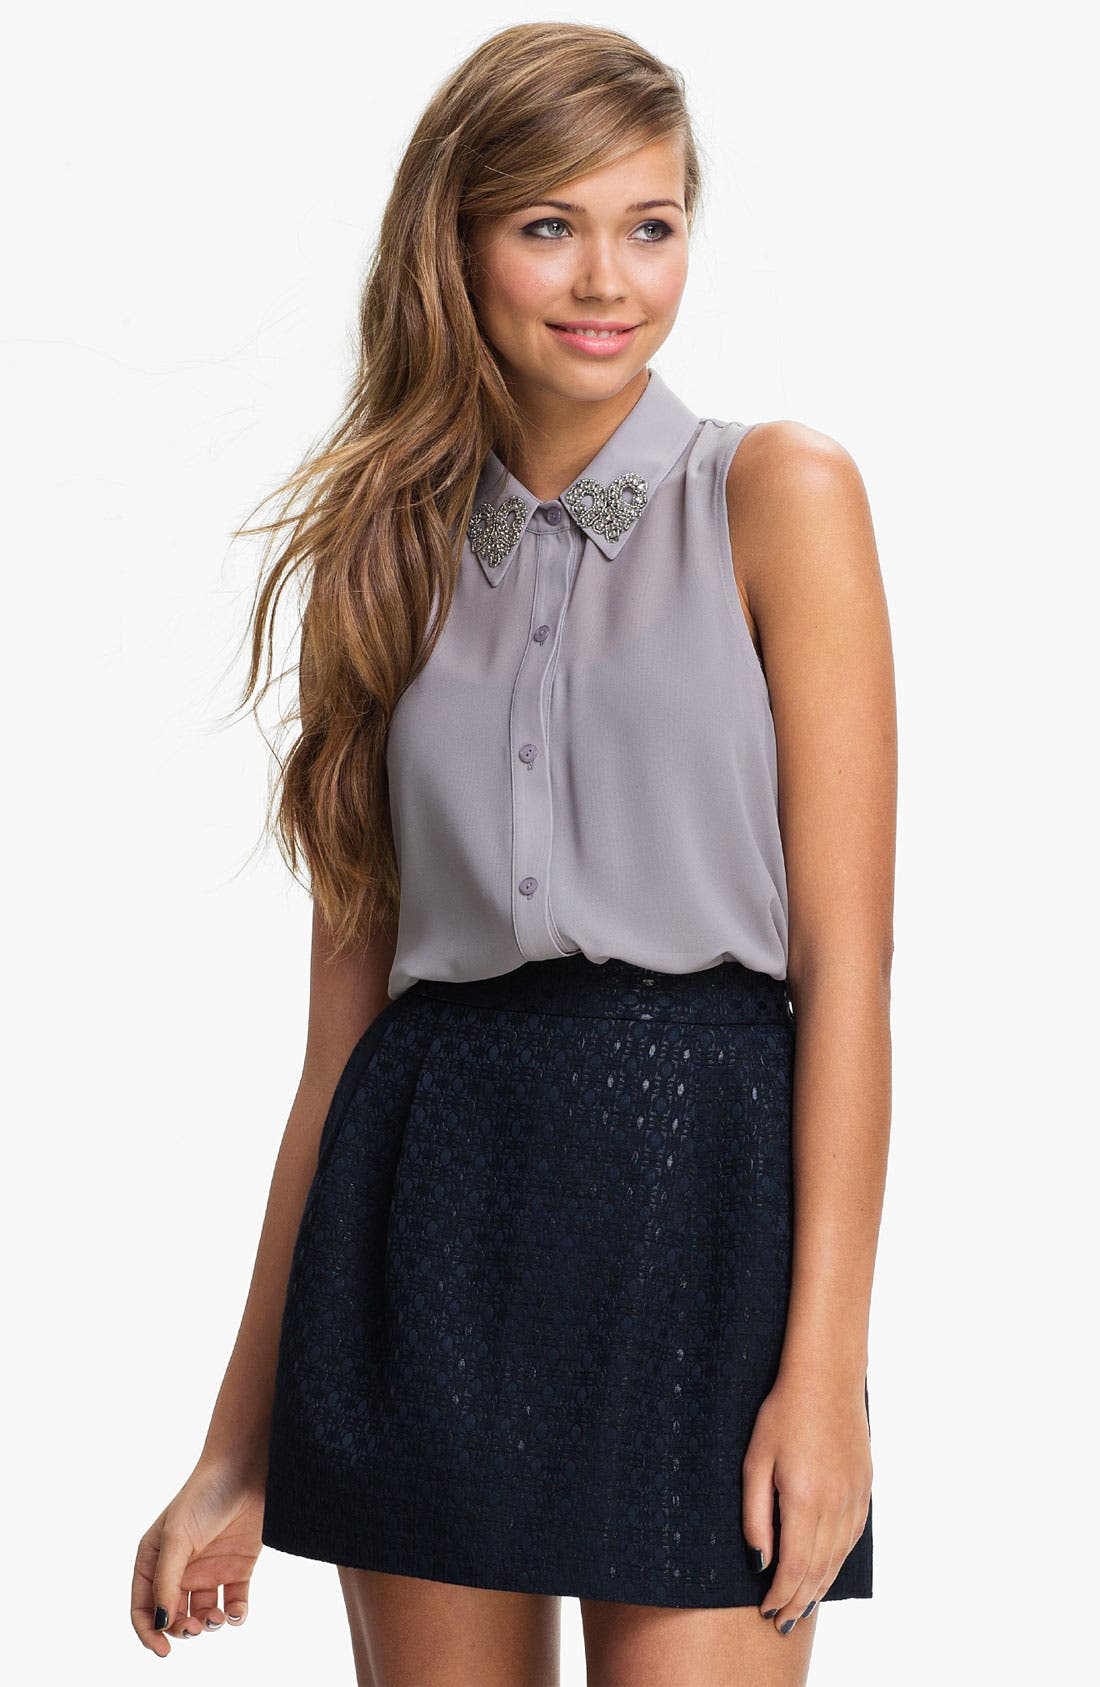 Main Image - Lush Embellished Collar Sleeveless Shirt (Juniors)